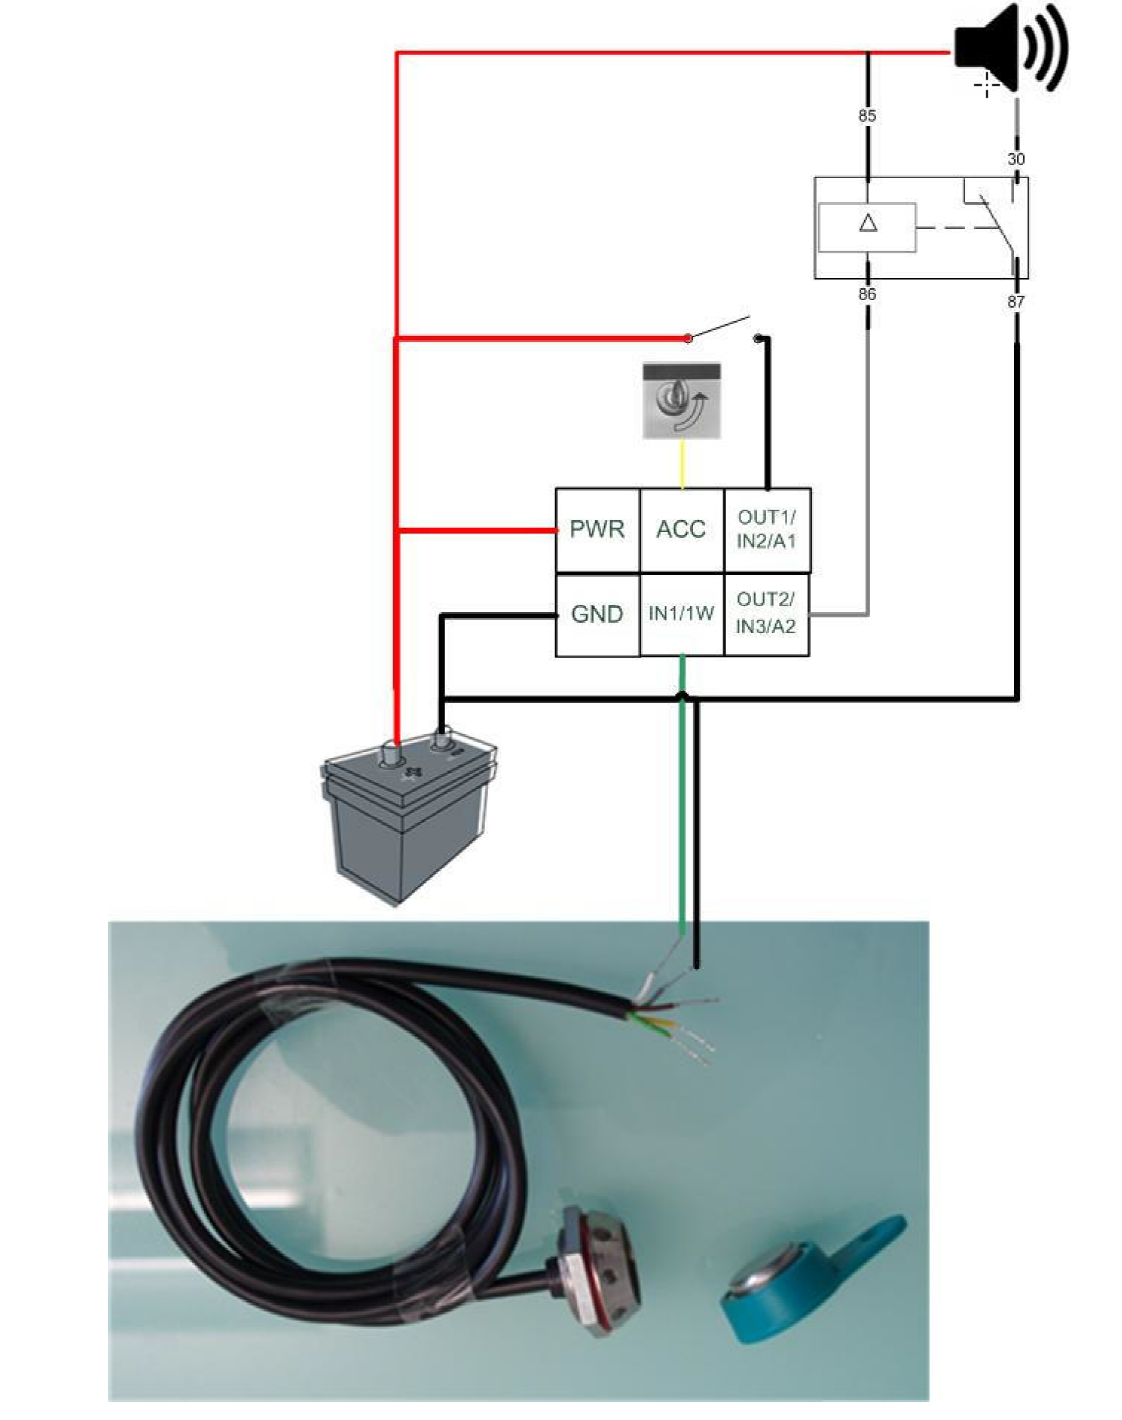 image2015 5 12 14%3A5%3A12?version=1&modificationDate=1431432359069&api=v2 gps dynamic einbauanleitung ak1 Basic Electrical Wiring Diagrams at bakdesigns.co